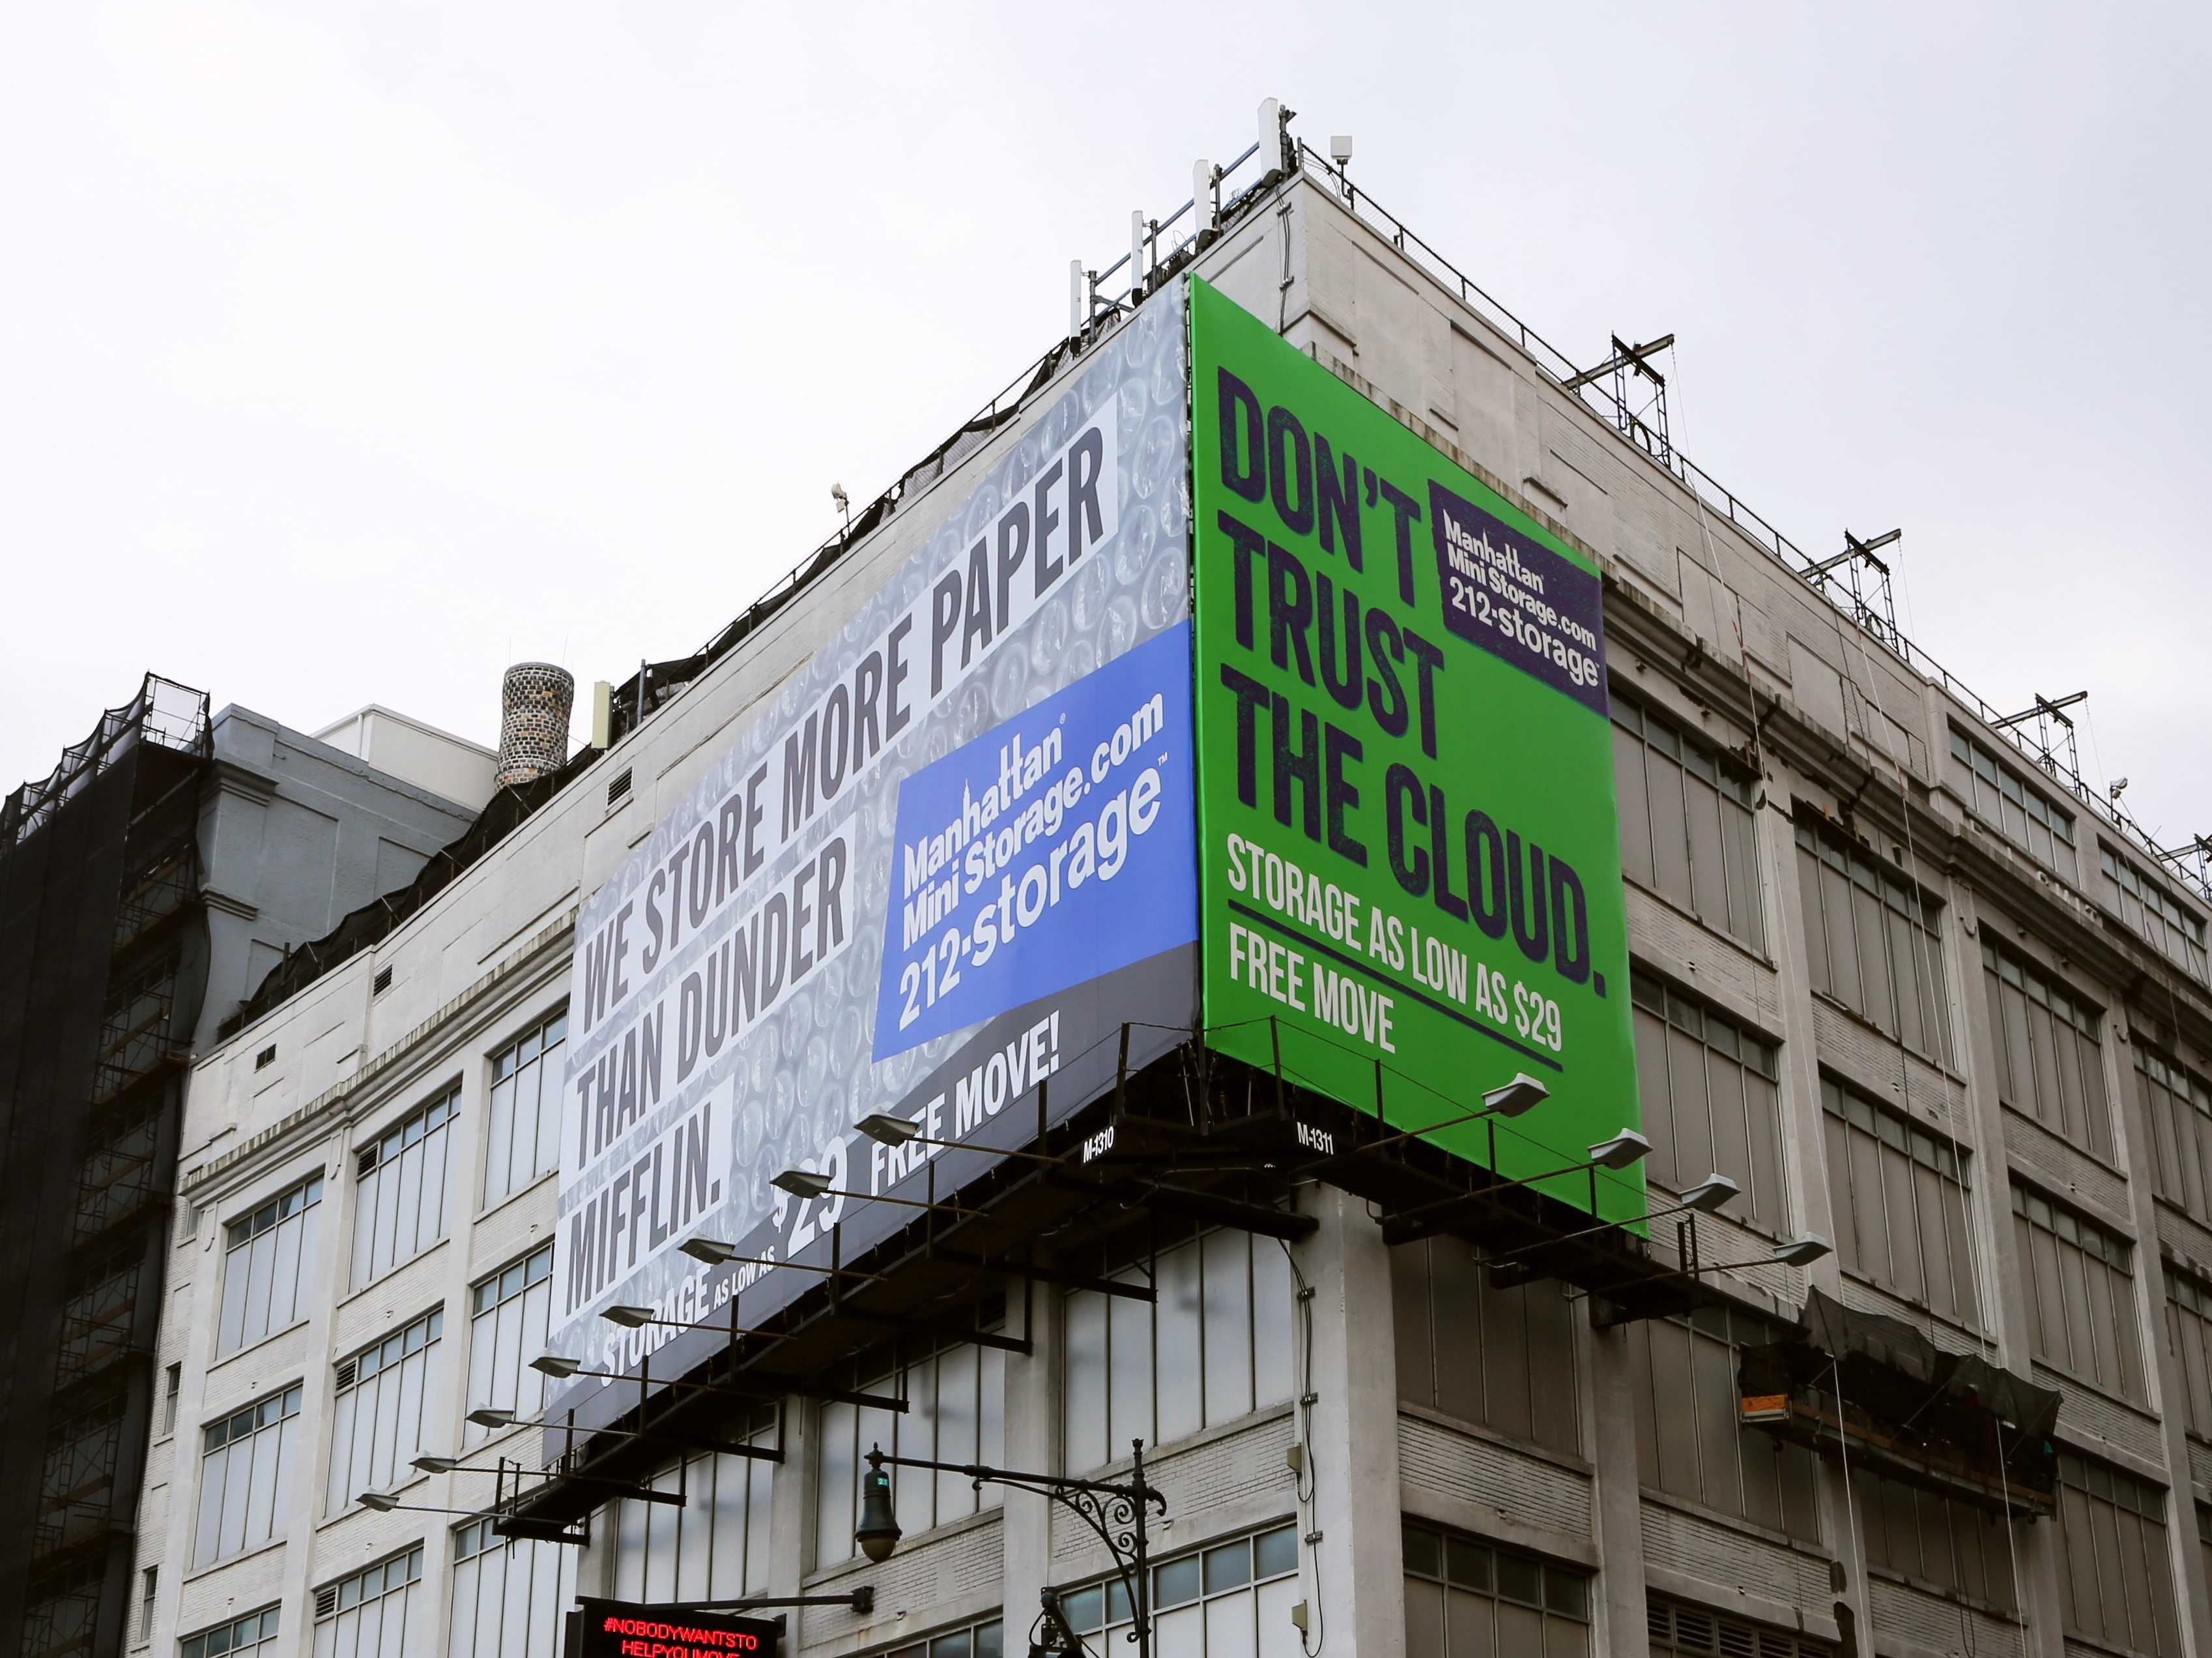 """A billboard advertisement for Manhattan Mini-Storage. The green background and mention of """"the cloud"""" is a direct reference to MakeSpace. Via Business Insider & MakeSpace"""